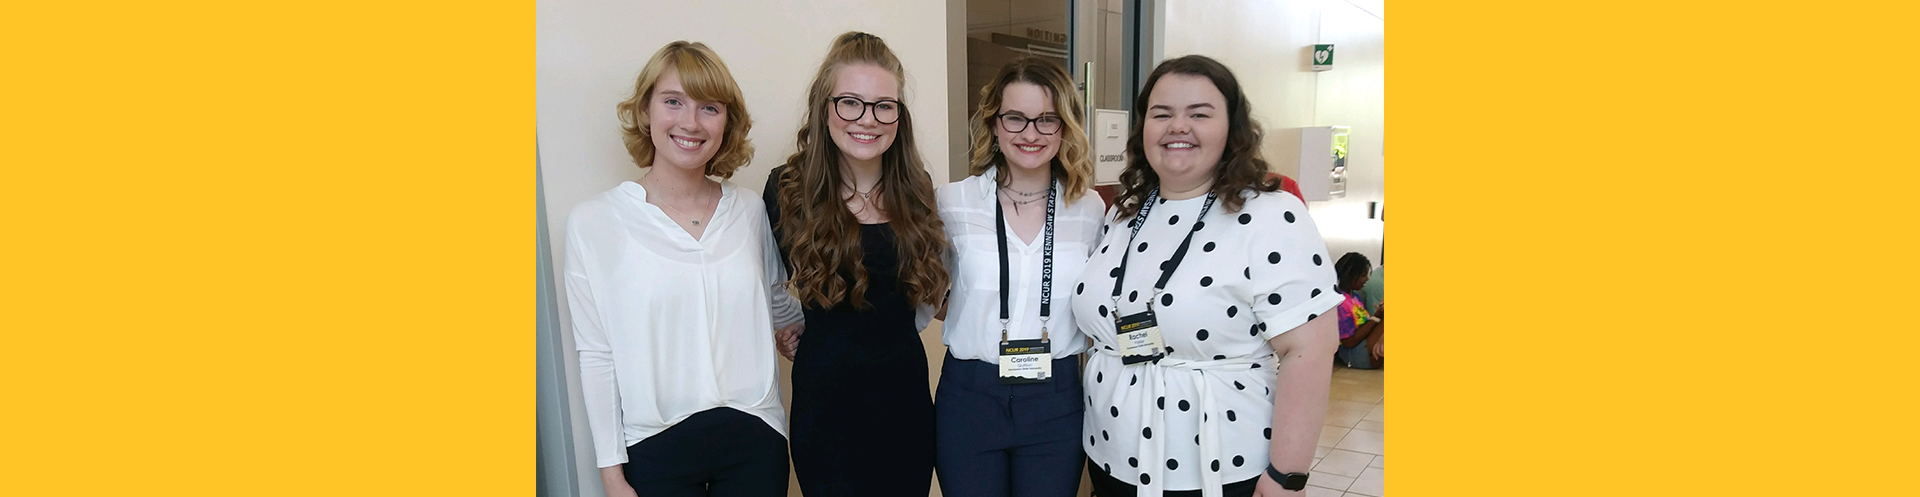 First-year Thrivers presented at national conference!